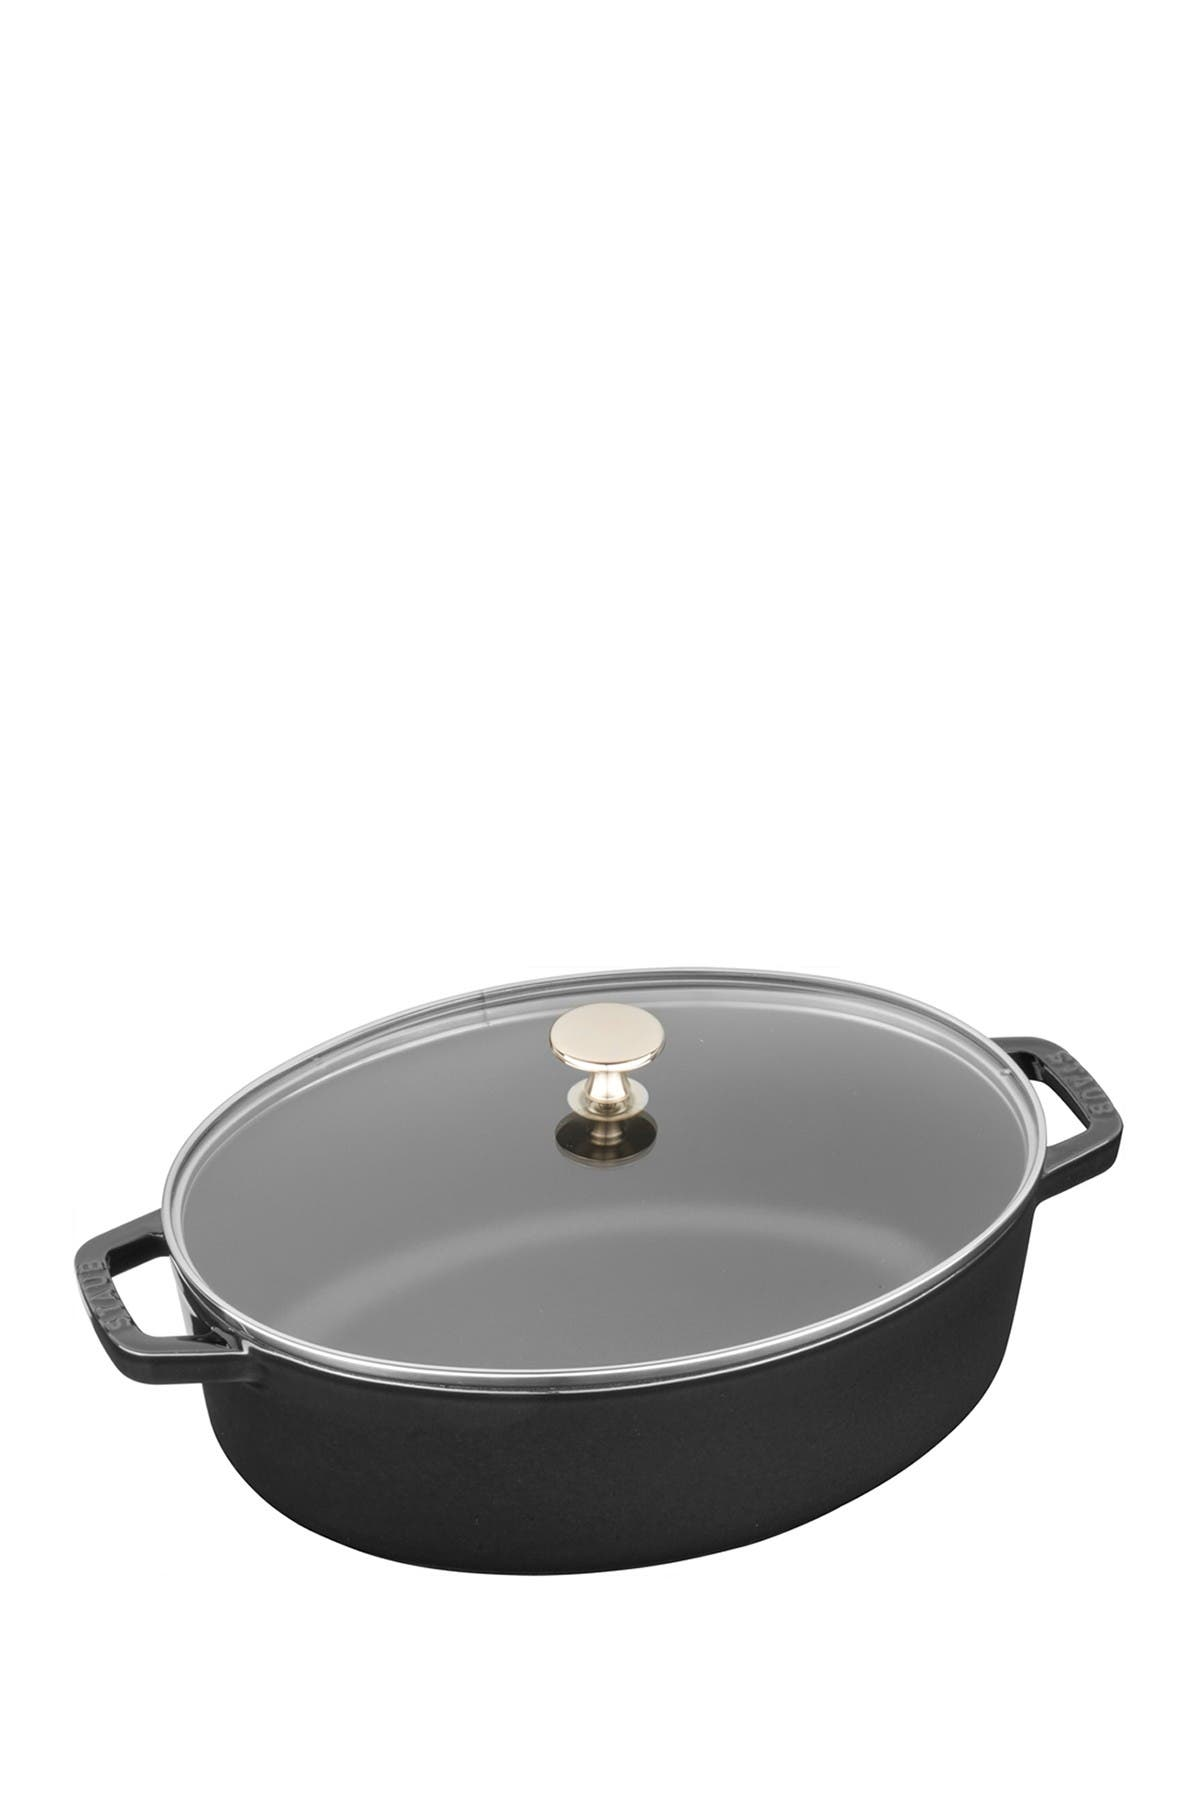 Image of Staub 4qt. Covered Oval Baking Dish